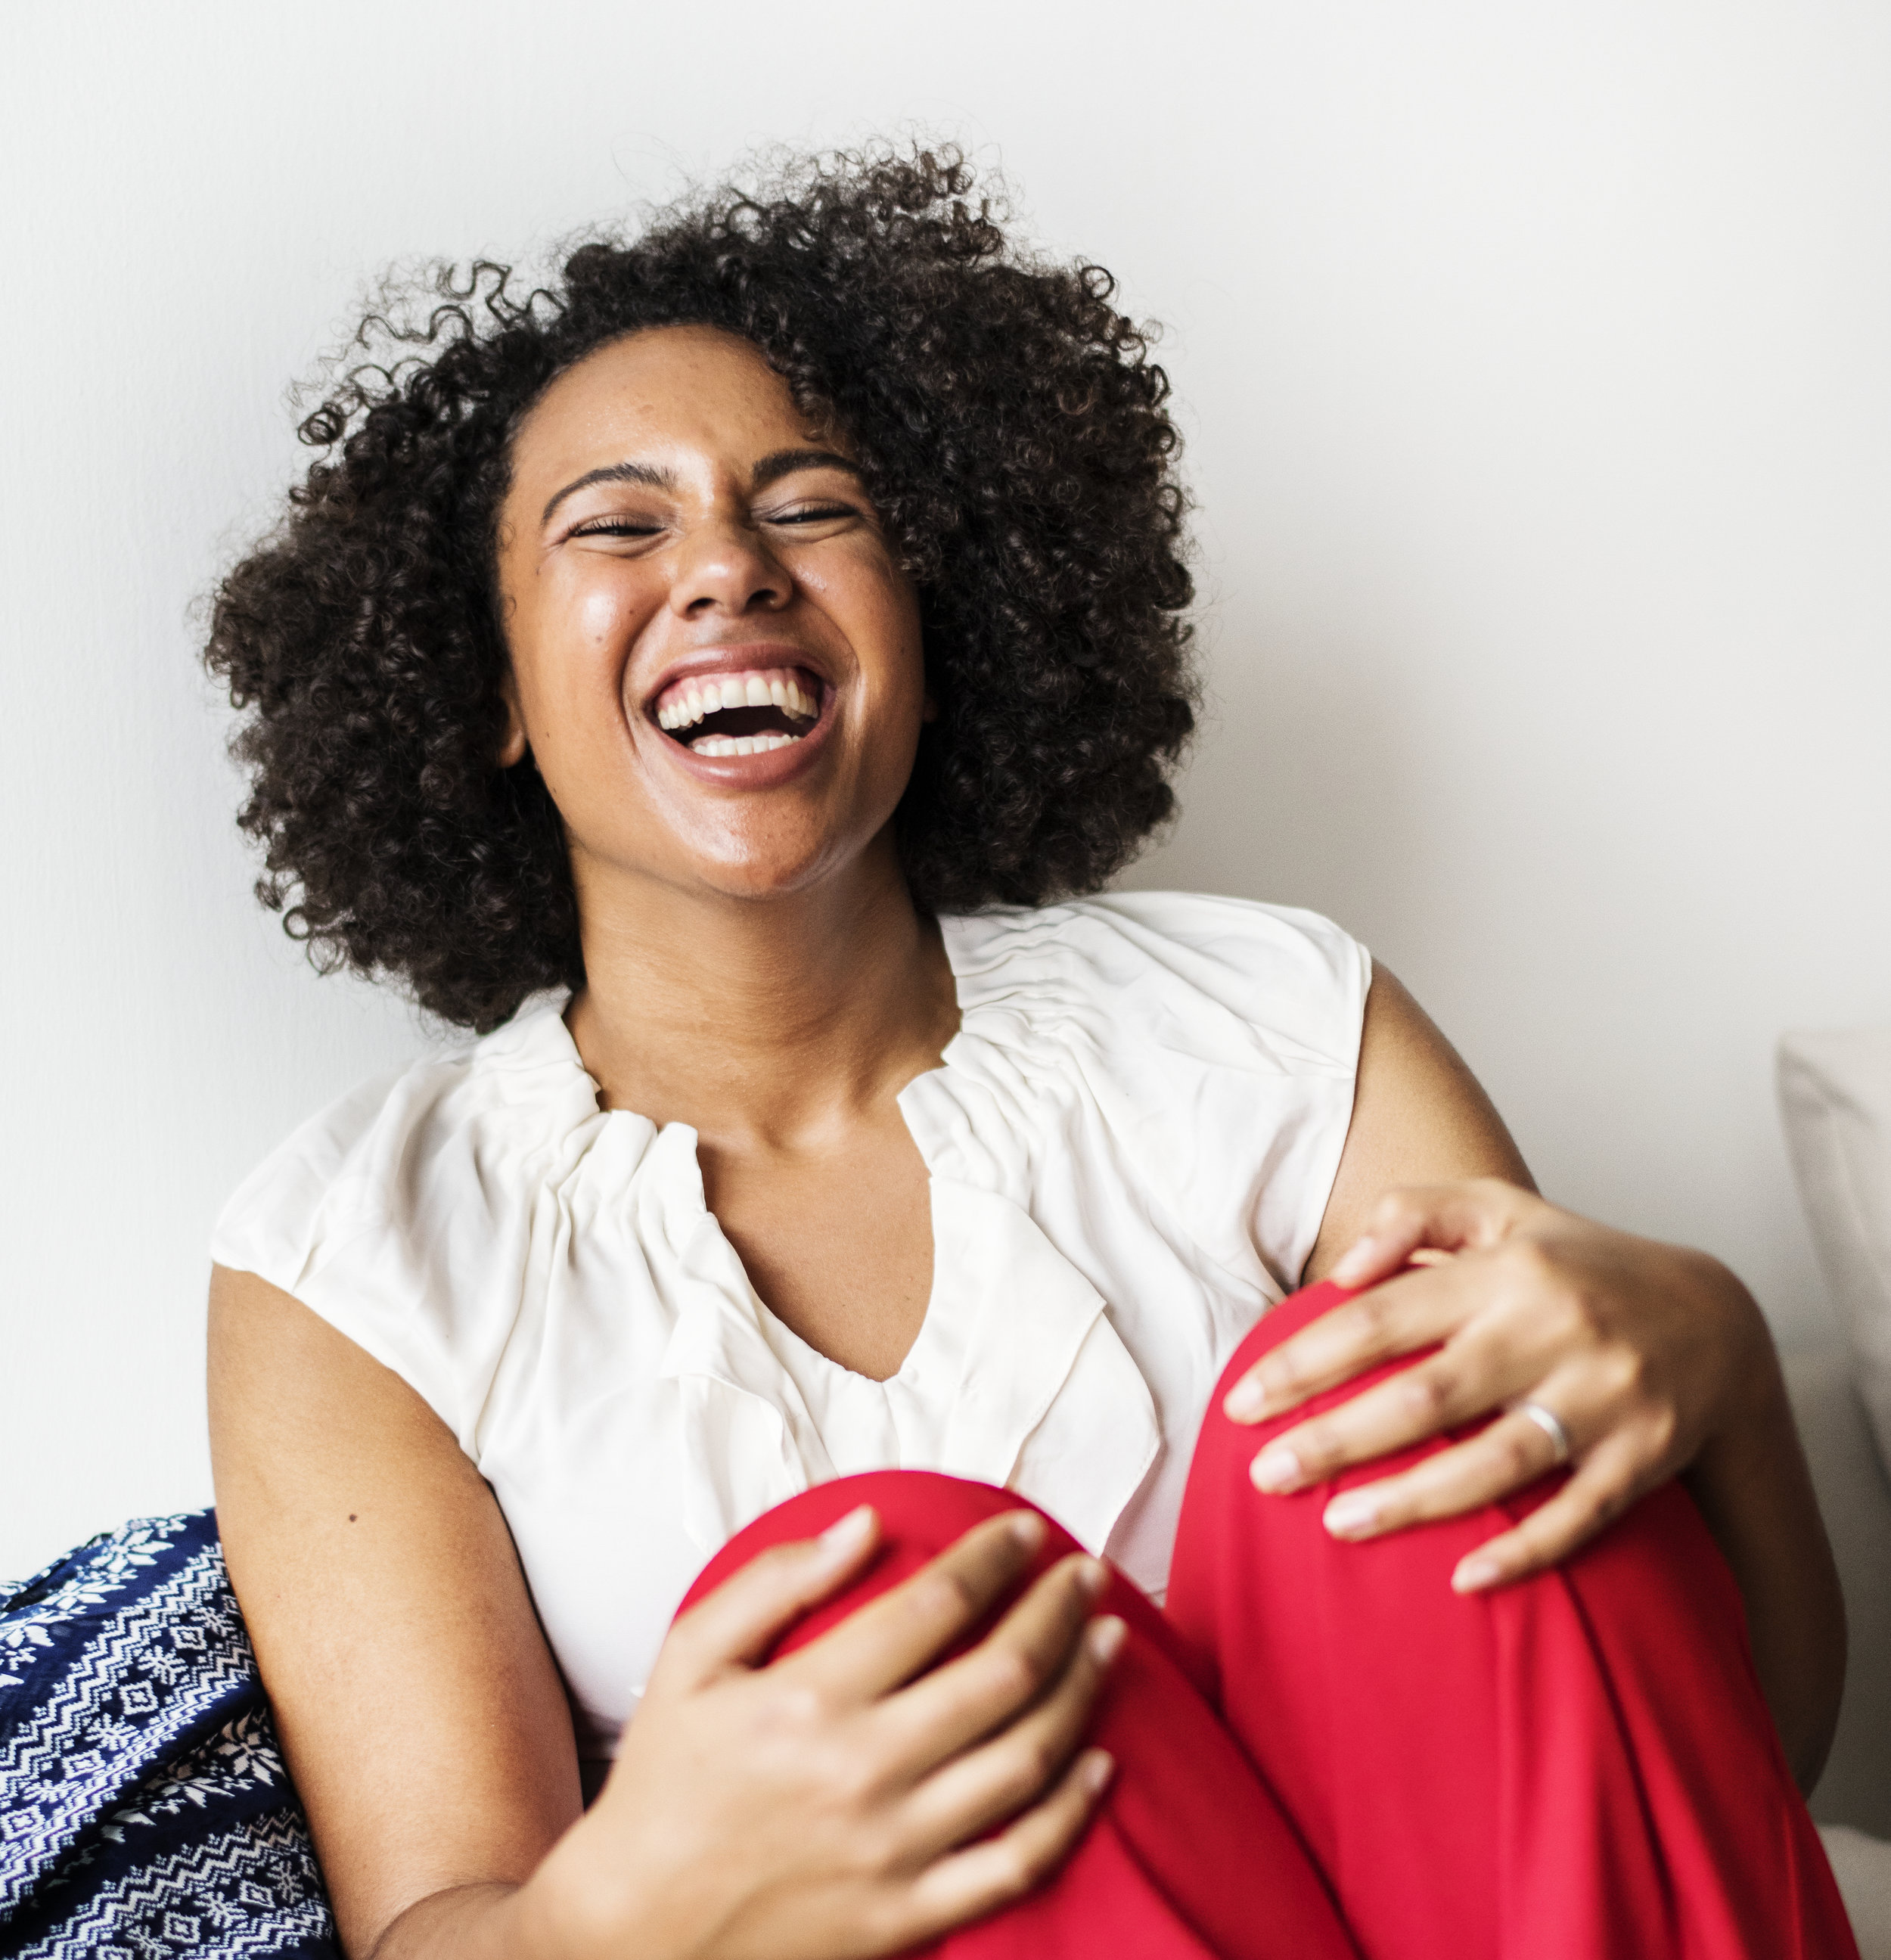 laughing woman by rawpixel_unsplash